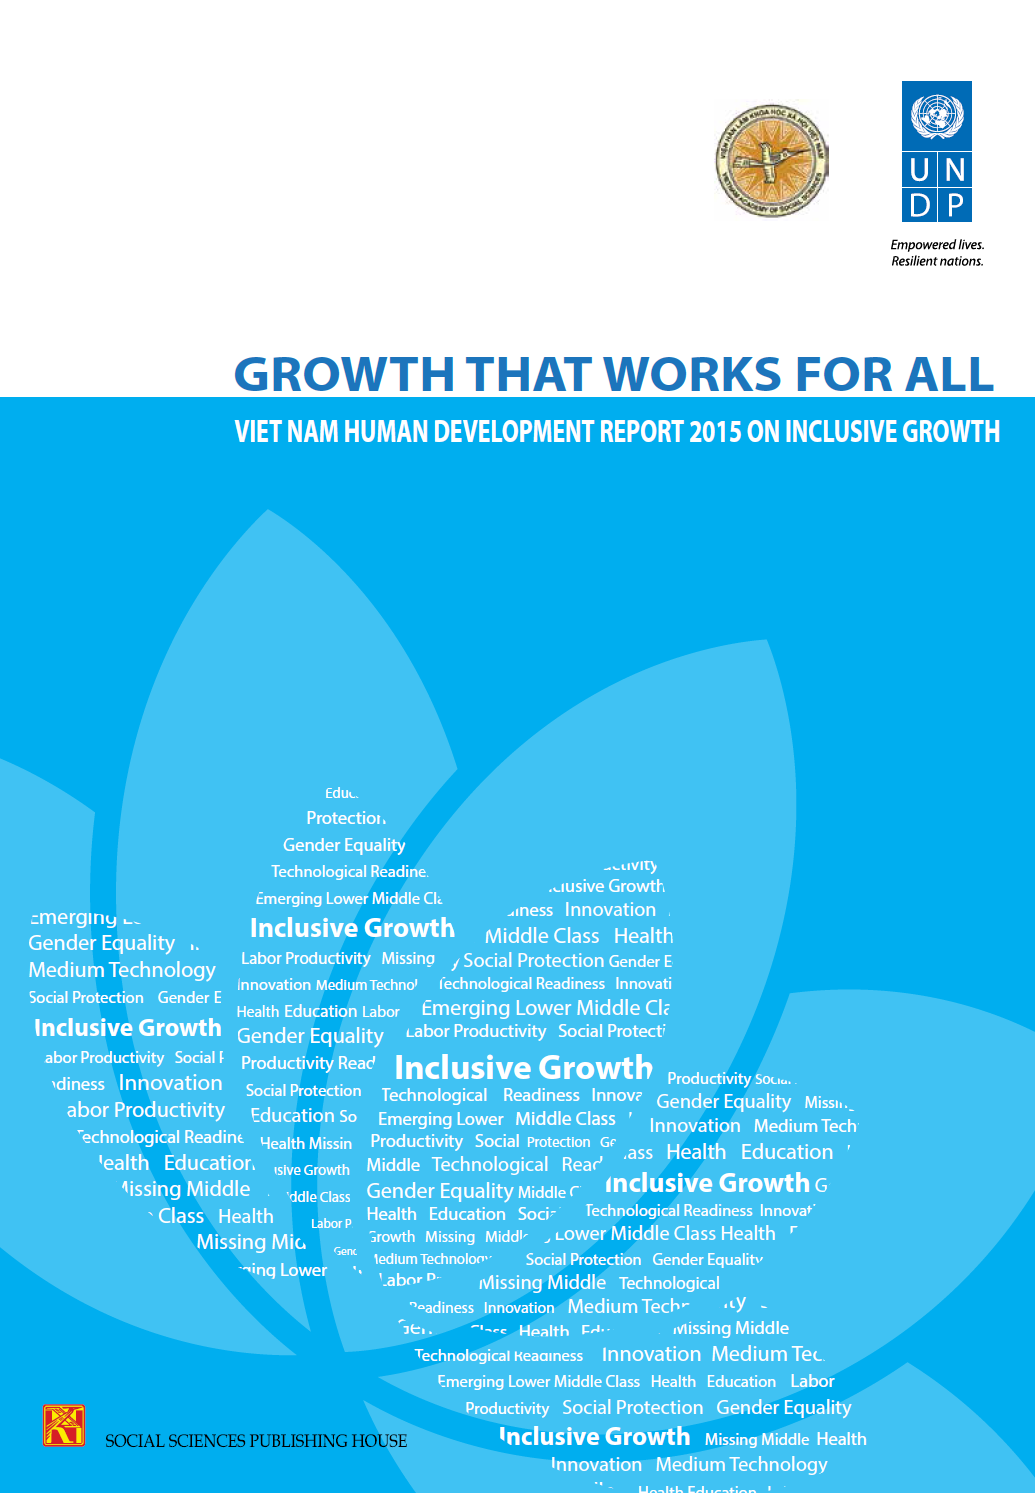 Growth that works for all - Viet Nam Human Development Report 2015 On Inclusive Growth